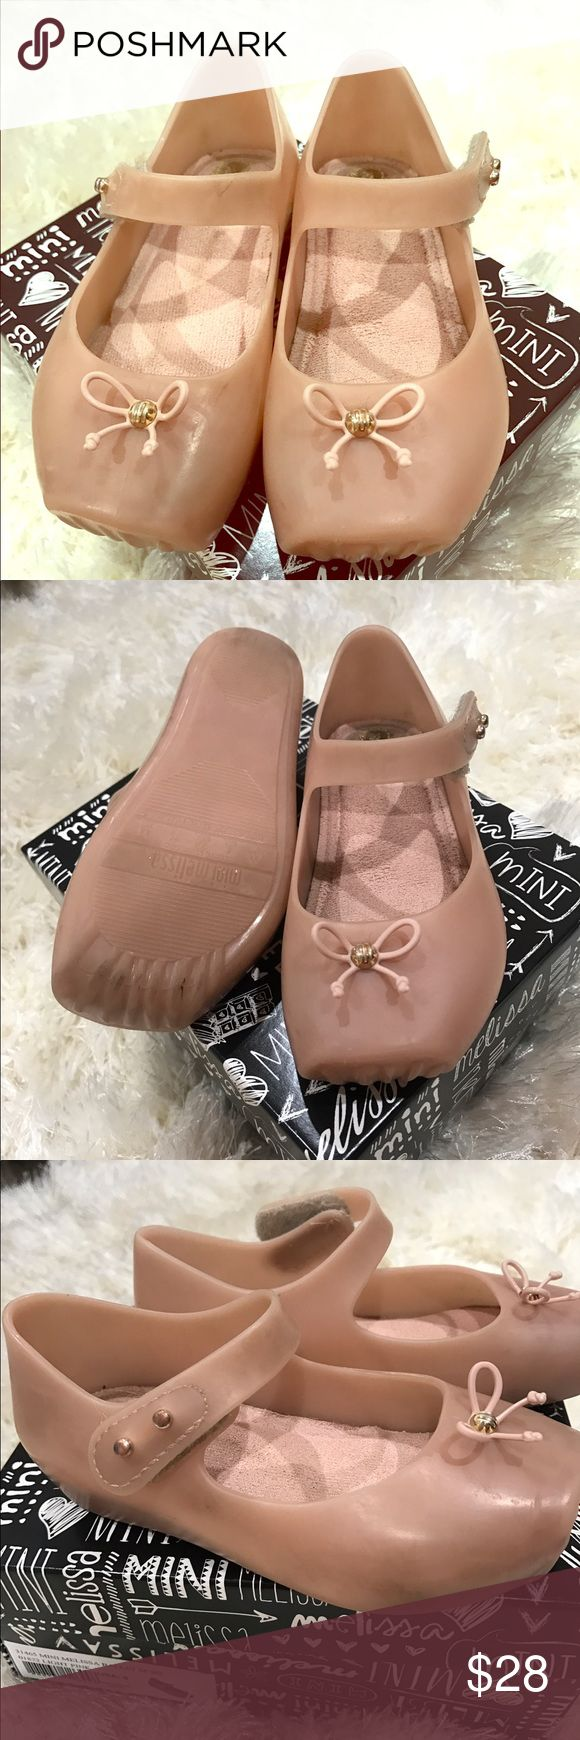 Flash sale 🎉🎊Mini Melisa Ballet Normal wear mini Melissa ballet pair. It's smells great and comes with the box and dust bag. It's pre-loved pair. Such a cute pair for many cute dresses. Mini Melissa Shoes Dress Shoes